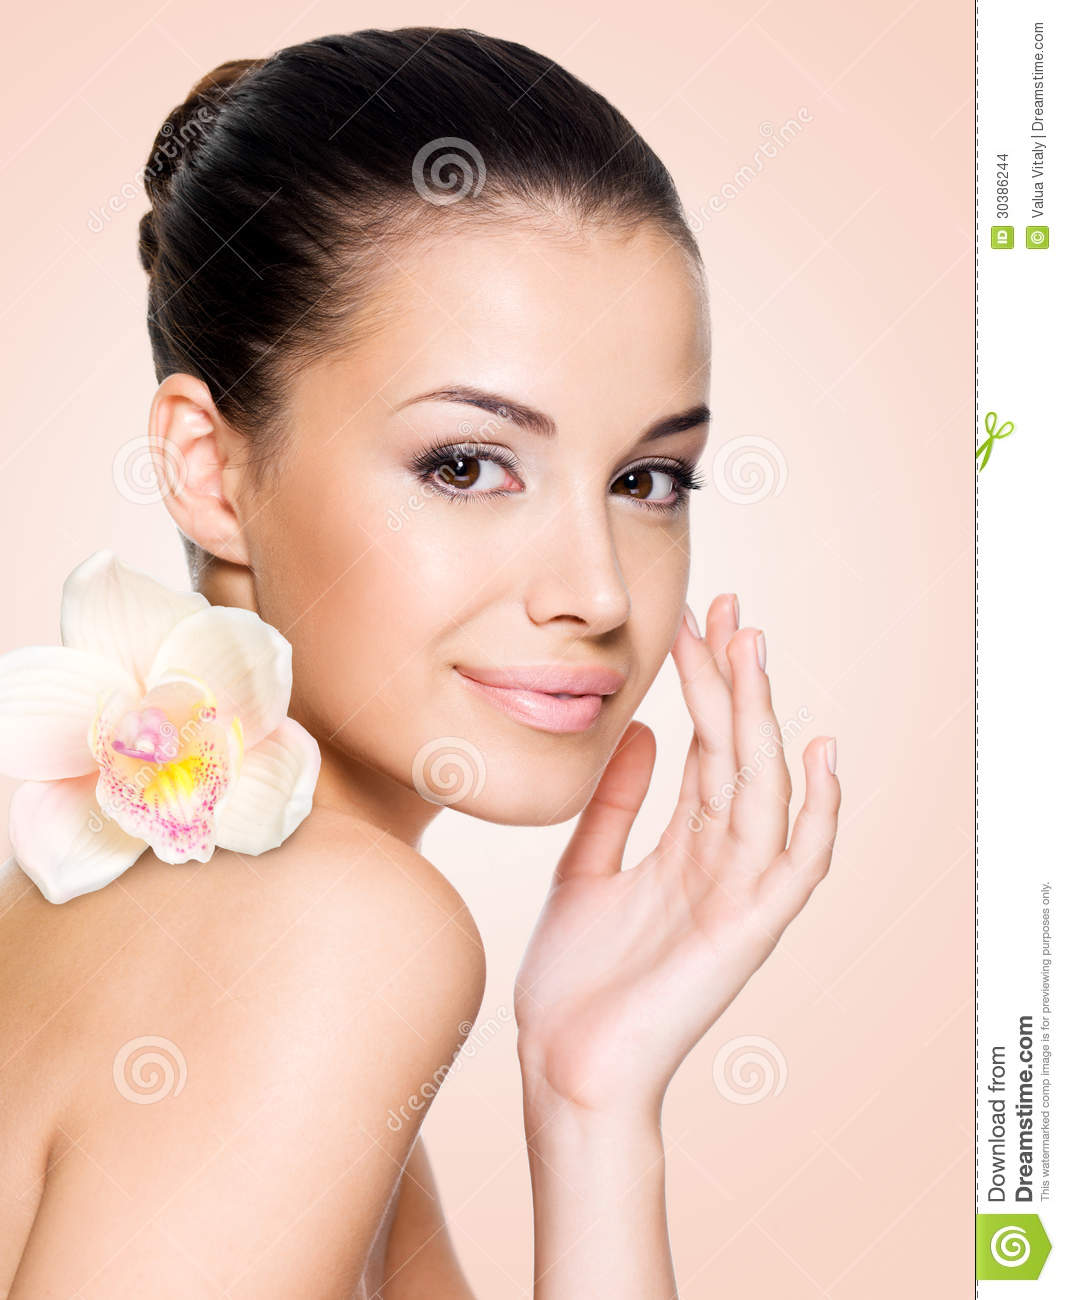 Good Skin Care: Beautiful Smiling Woman With Healthy Skin Stock Images